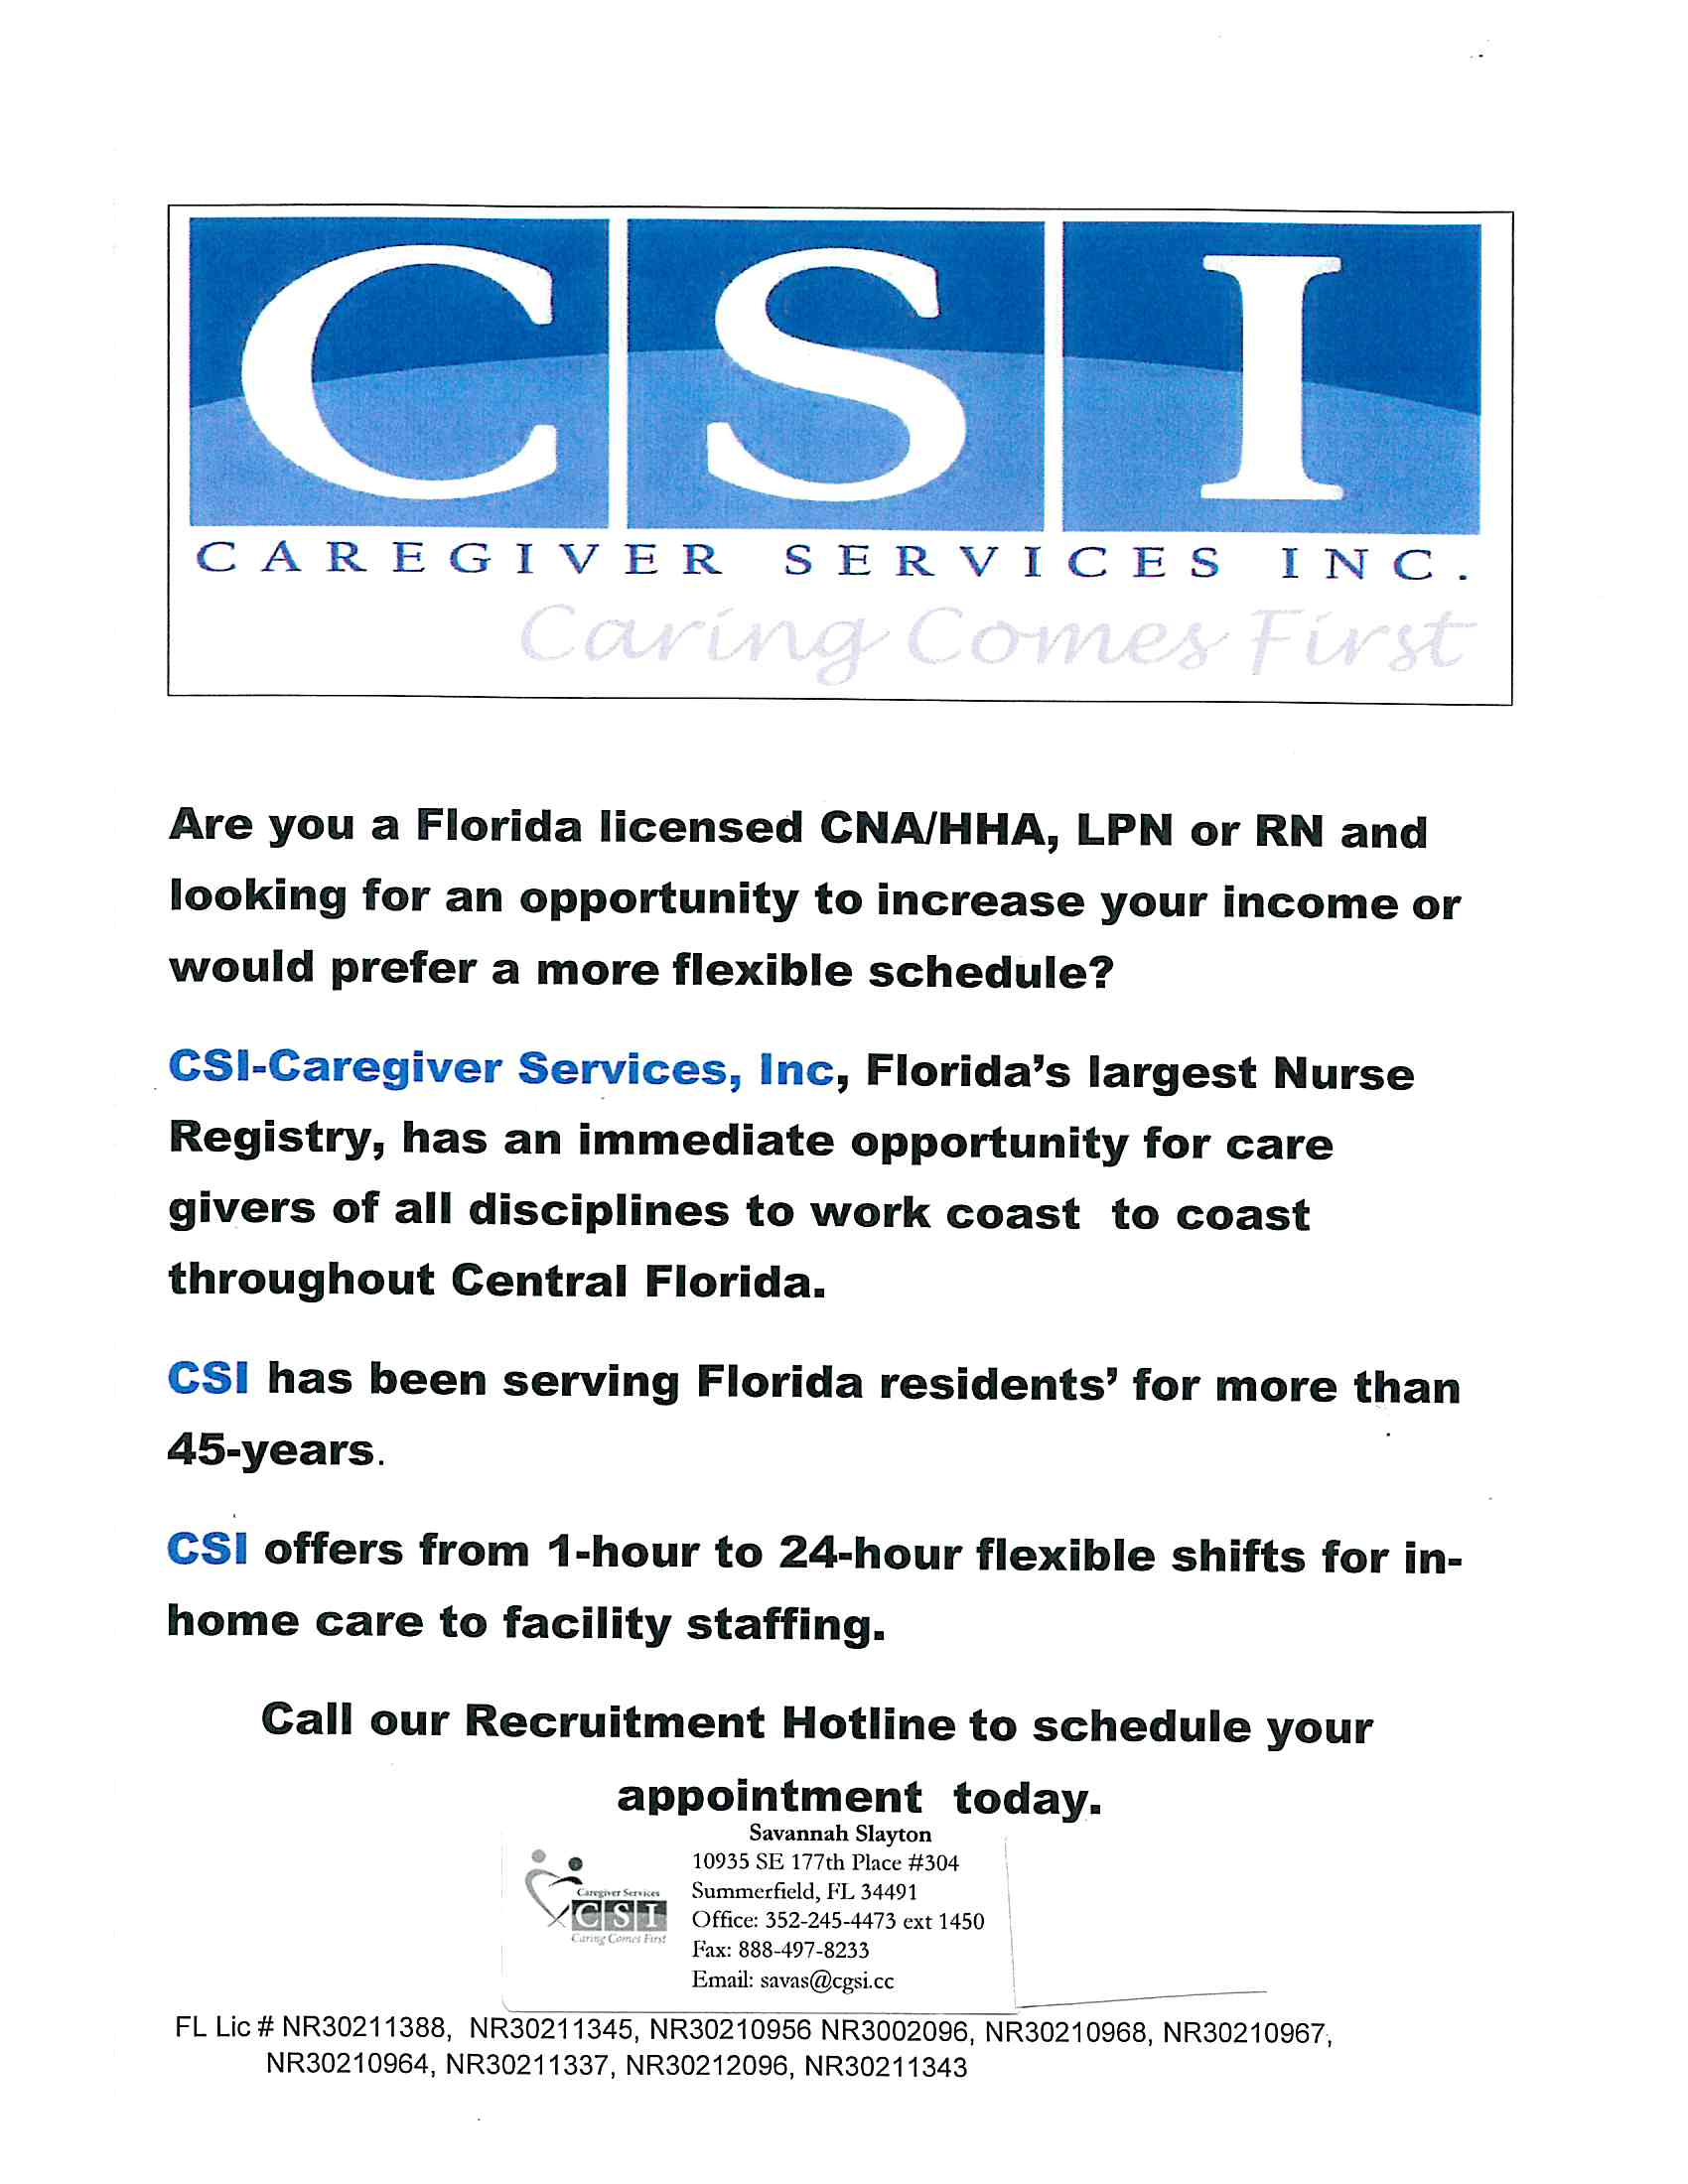 CSI-Caregiver Services, Inc. Hiring for CNA/HHA, LPN, RA